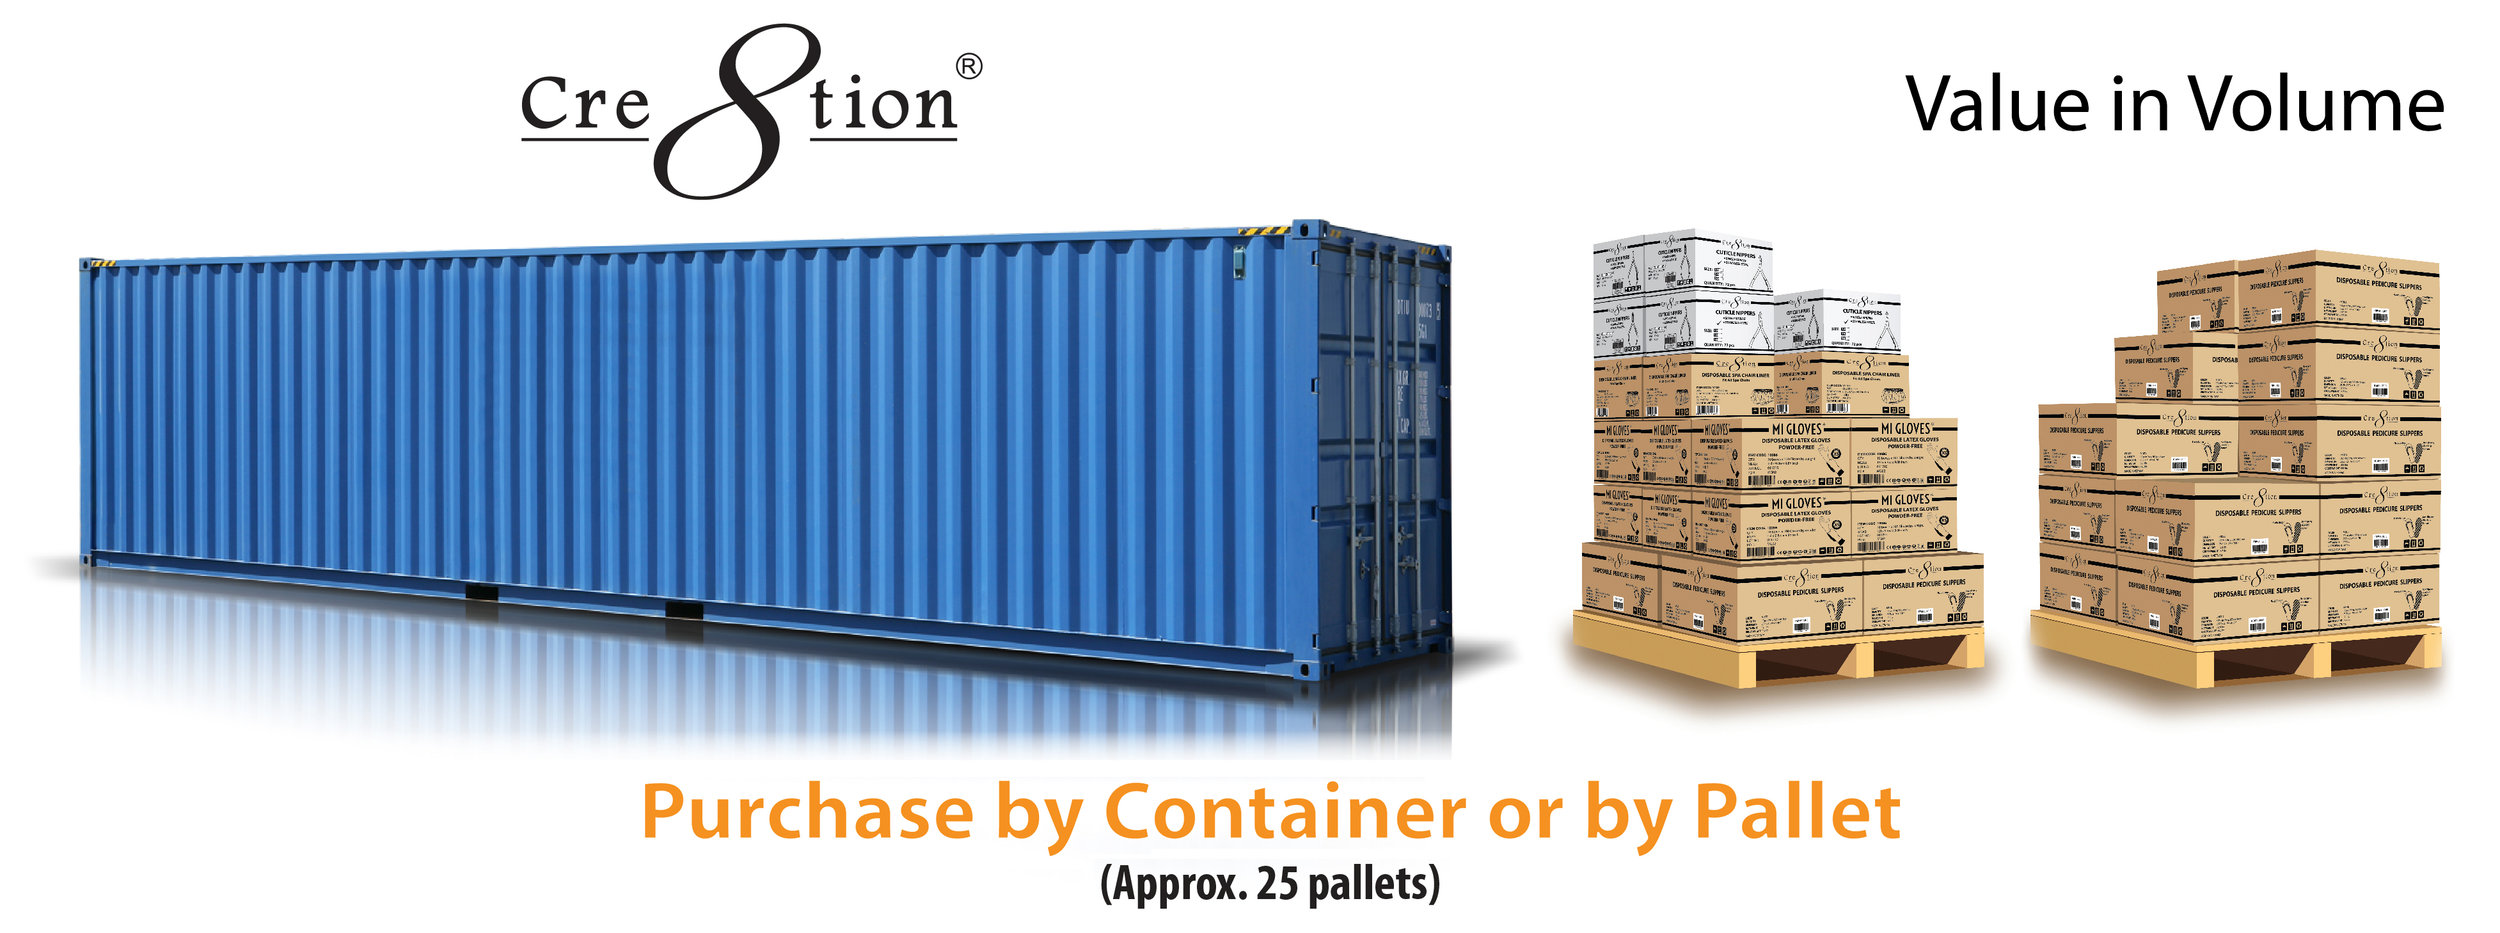 container banner revised.jpg